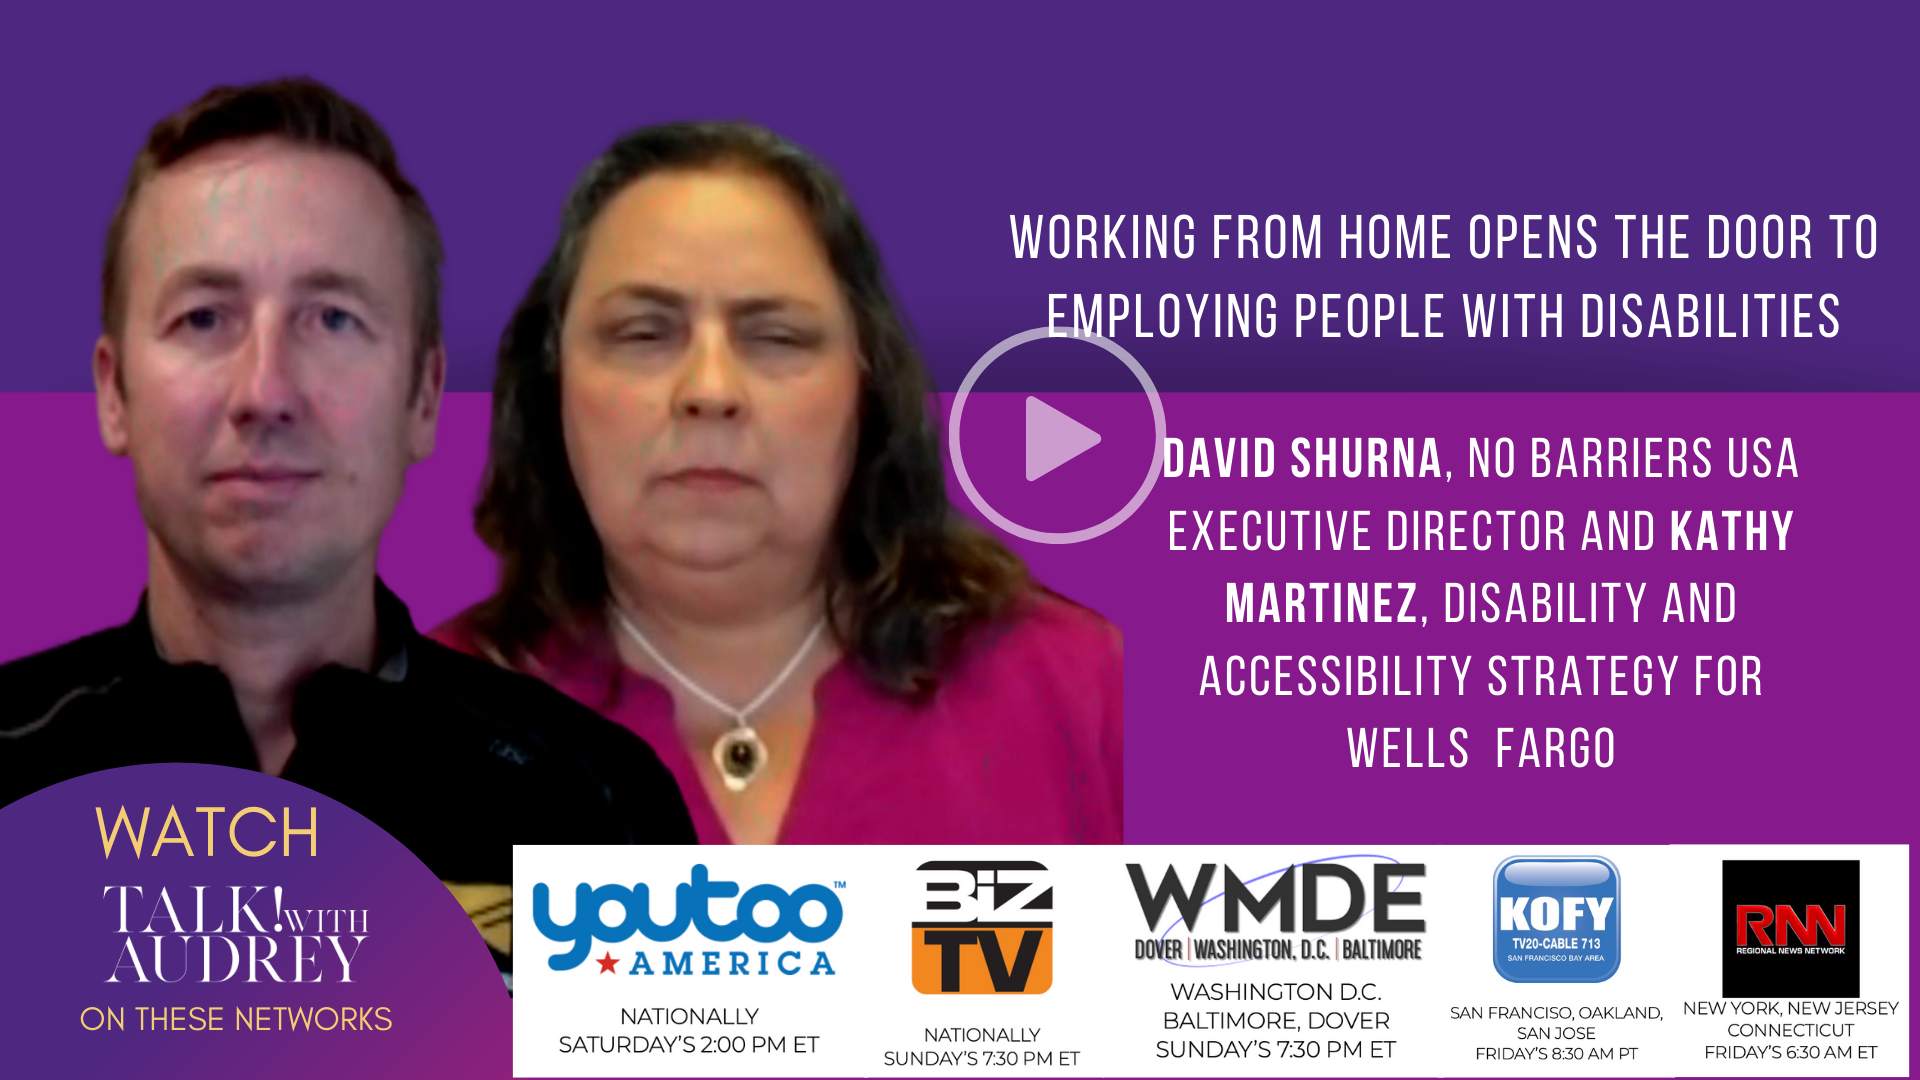 Working From Home Opens the Door to Employing People With Disabilities – TALK! with AUDREY TV